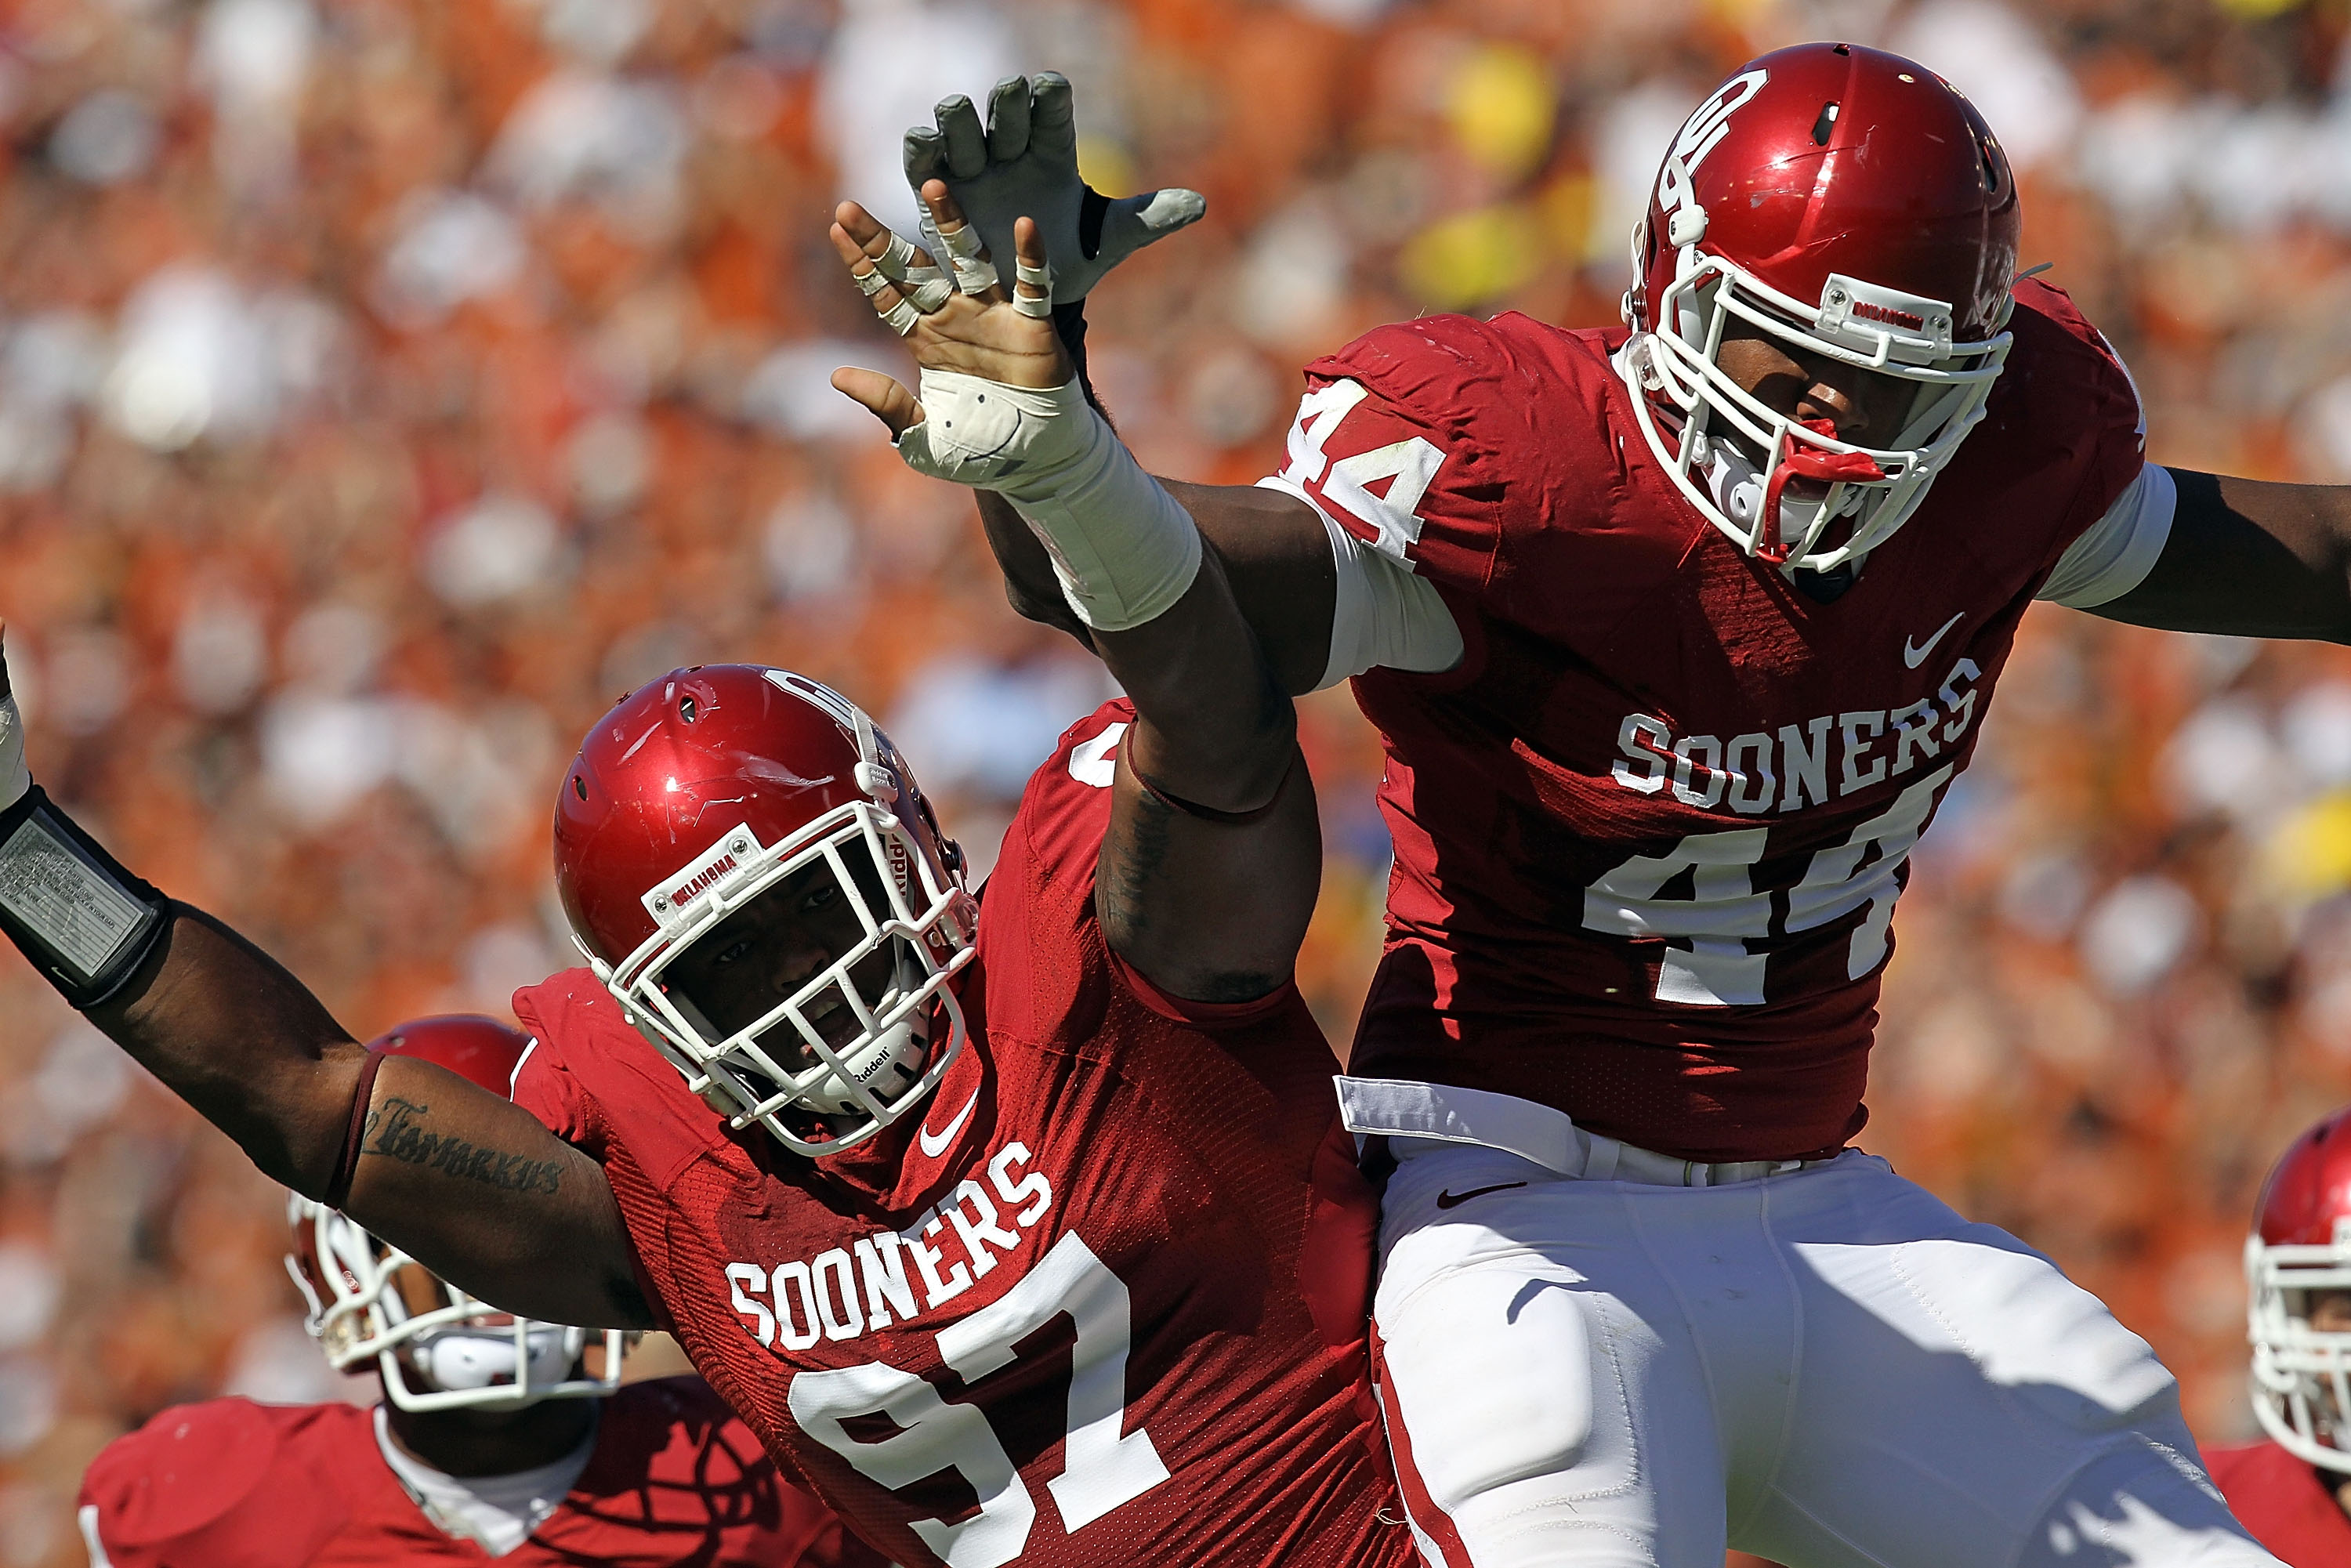 DALLAS - OCTOBER 02:  Jeremy Beal #44 and Jamarkus McFarland #97 of the Oklahoma Sooners celebrate a quarterback sack against the Texas Longhorns in the first quarter at the Cotton Bowl on October 2, 2010 in Dallas, Texas.  (Photo by Ronald Martinez/Getty